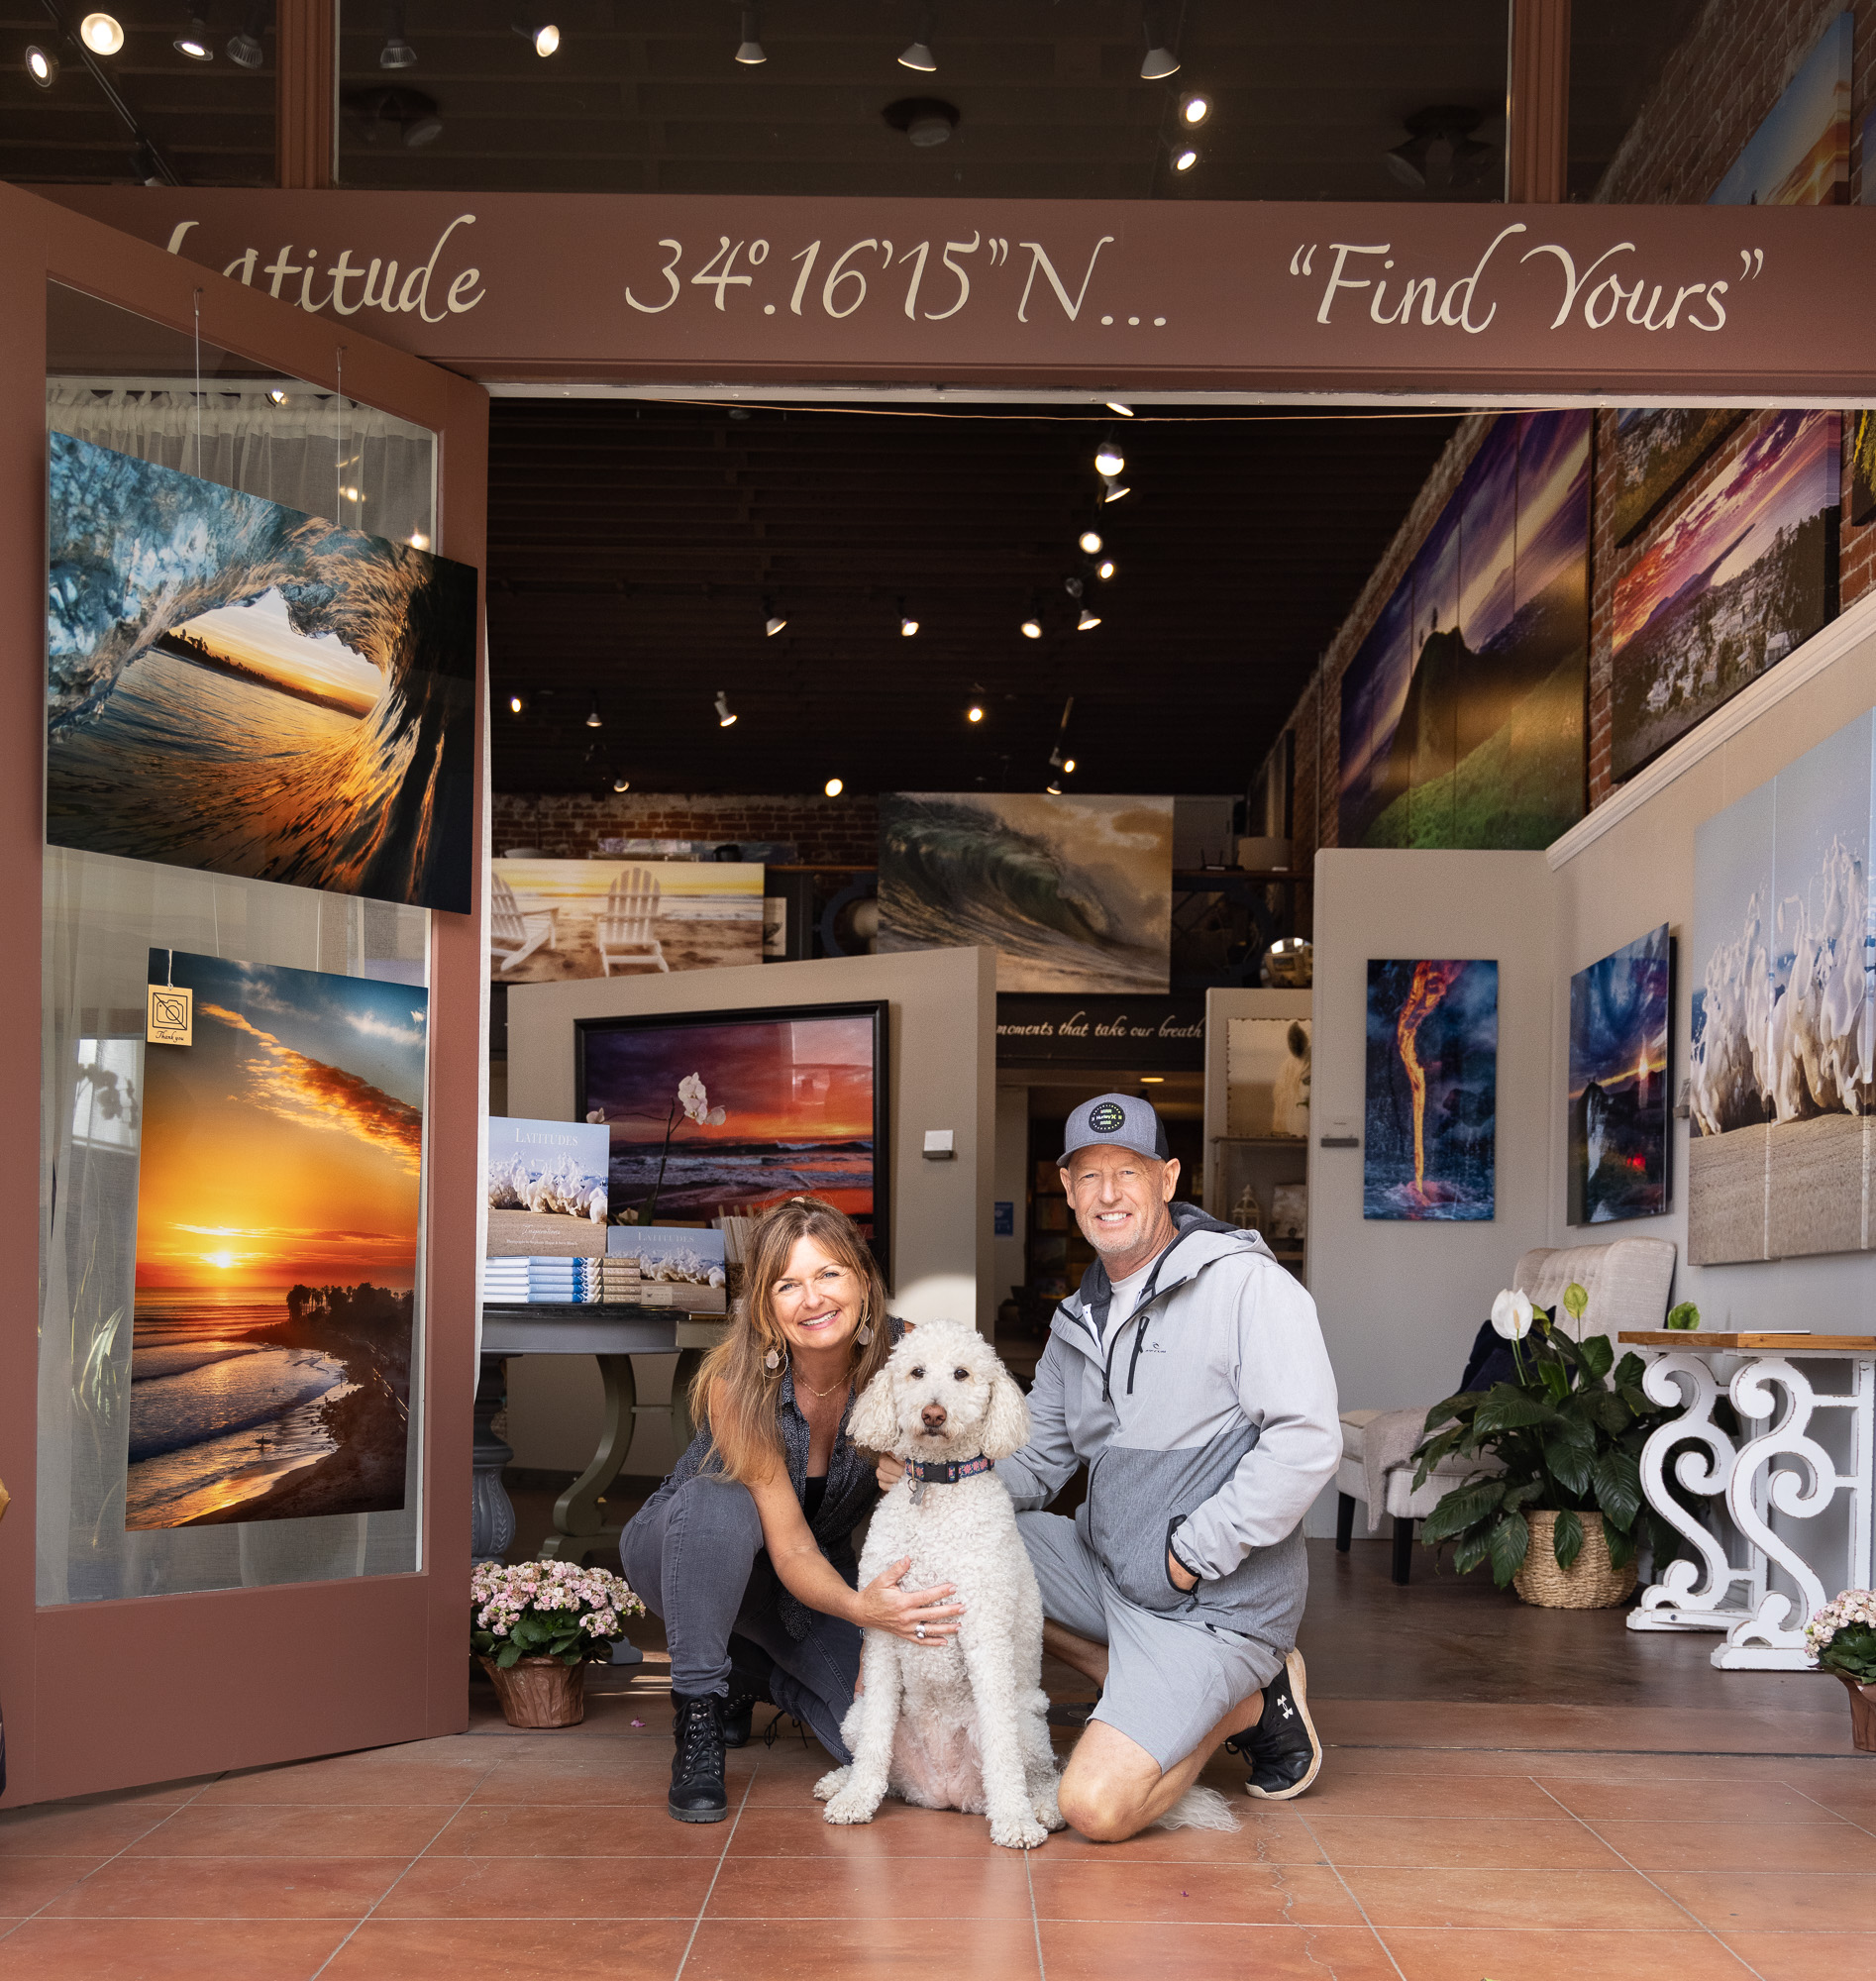 Owners of the gallery - Stephanie and Steve